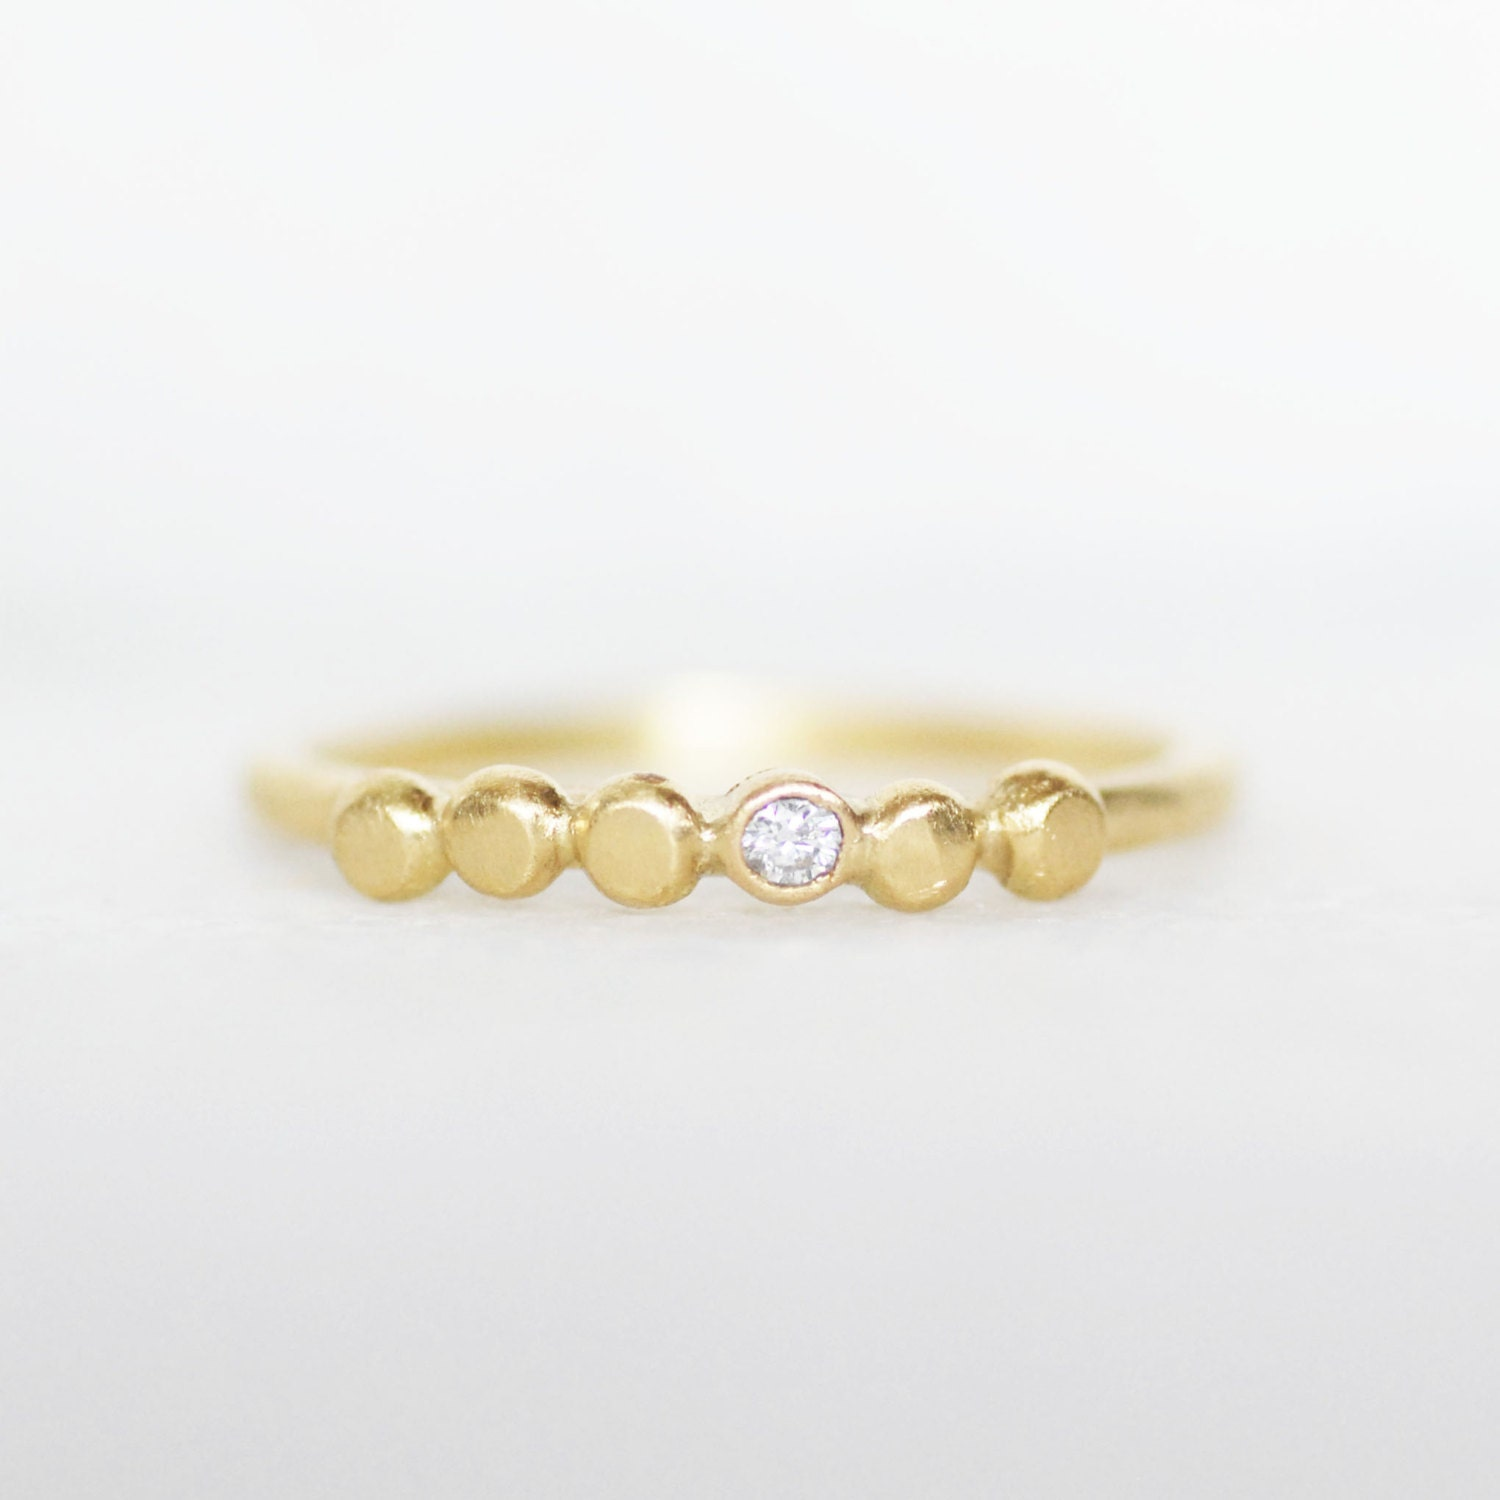 Tiny diamond pebble wedding ring 2mm diamond ring 18k or for Tiny wedding ring